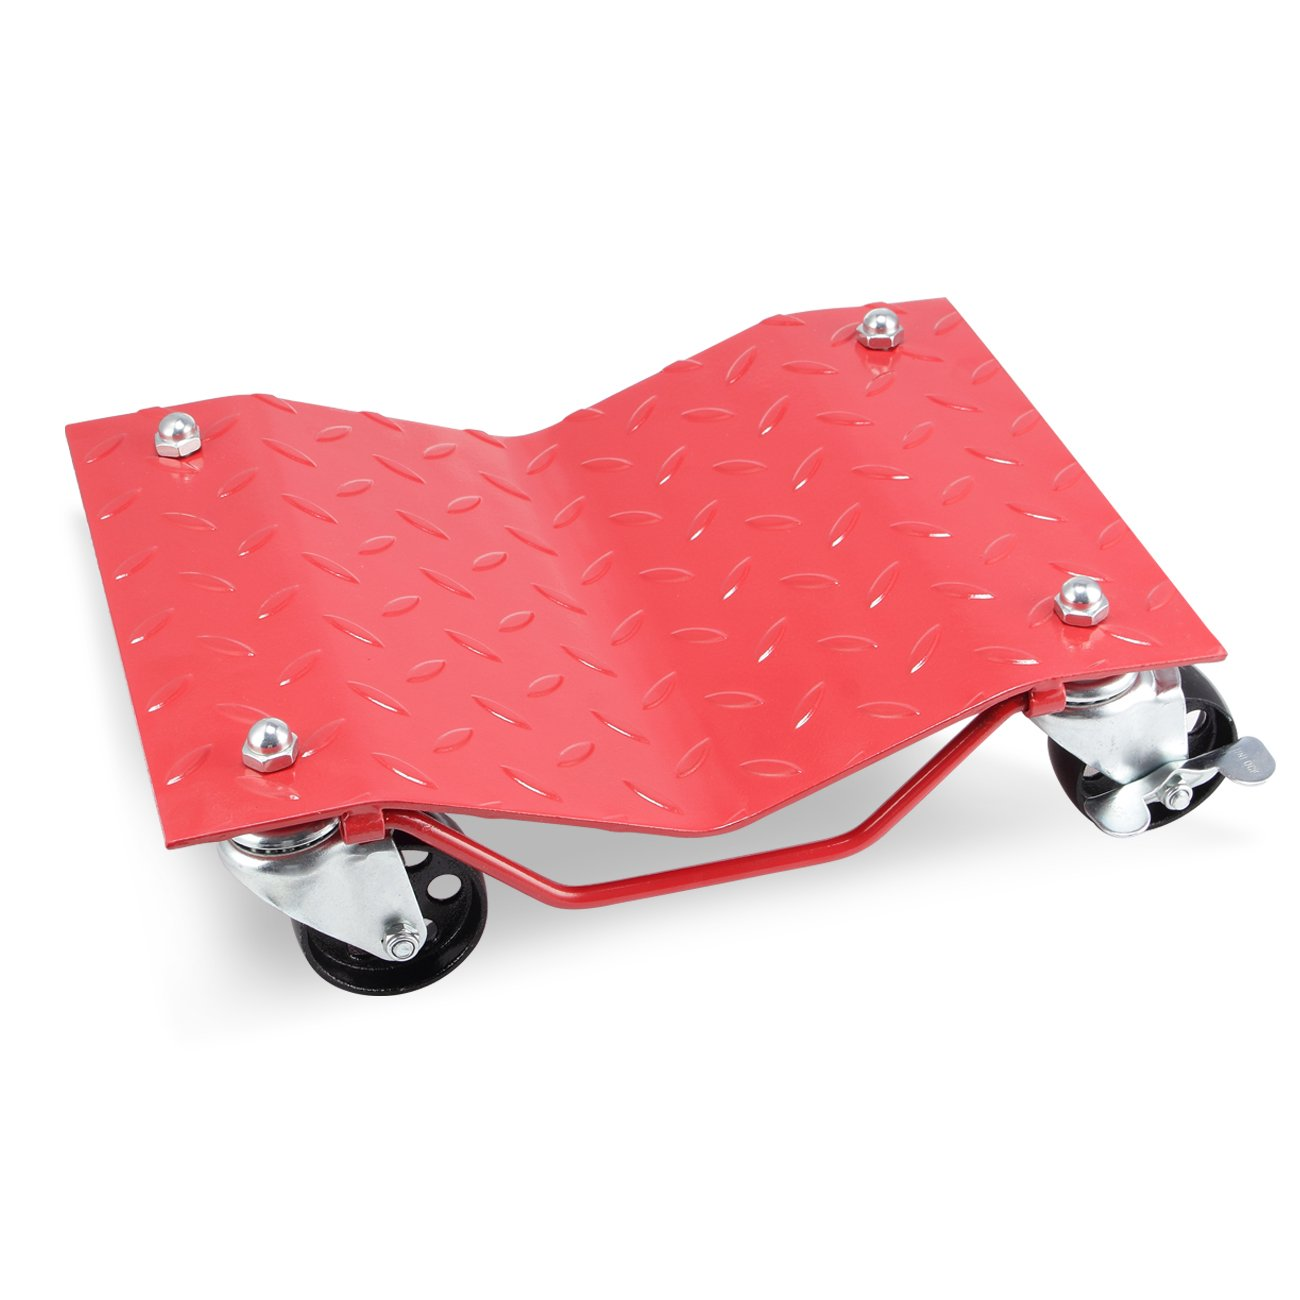 ARKSEN 2 Pack Set Heavy Duty Dollies Car Auto Repair Dolly Tire Skates Vehicle Moving Diamond w/Wheels & Lock, Red by ARKSEN (Image #3)